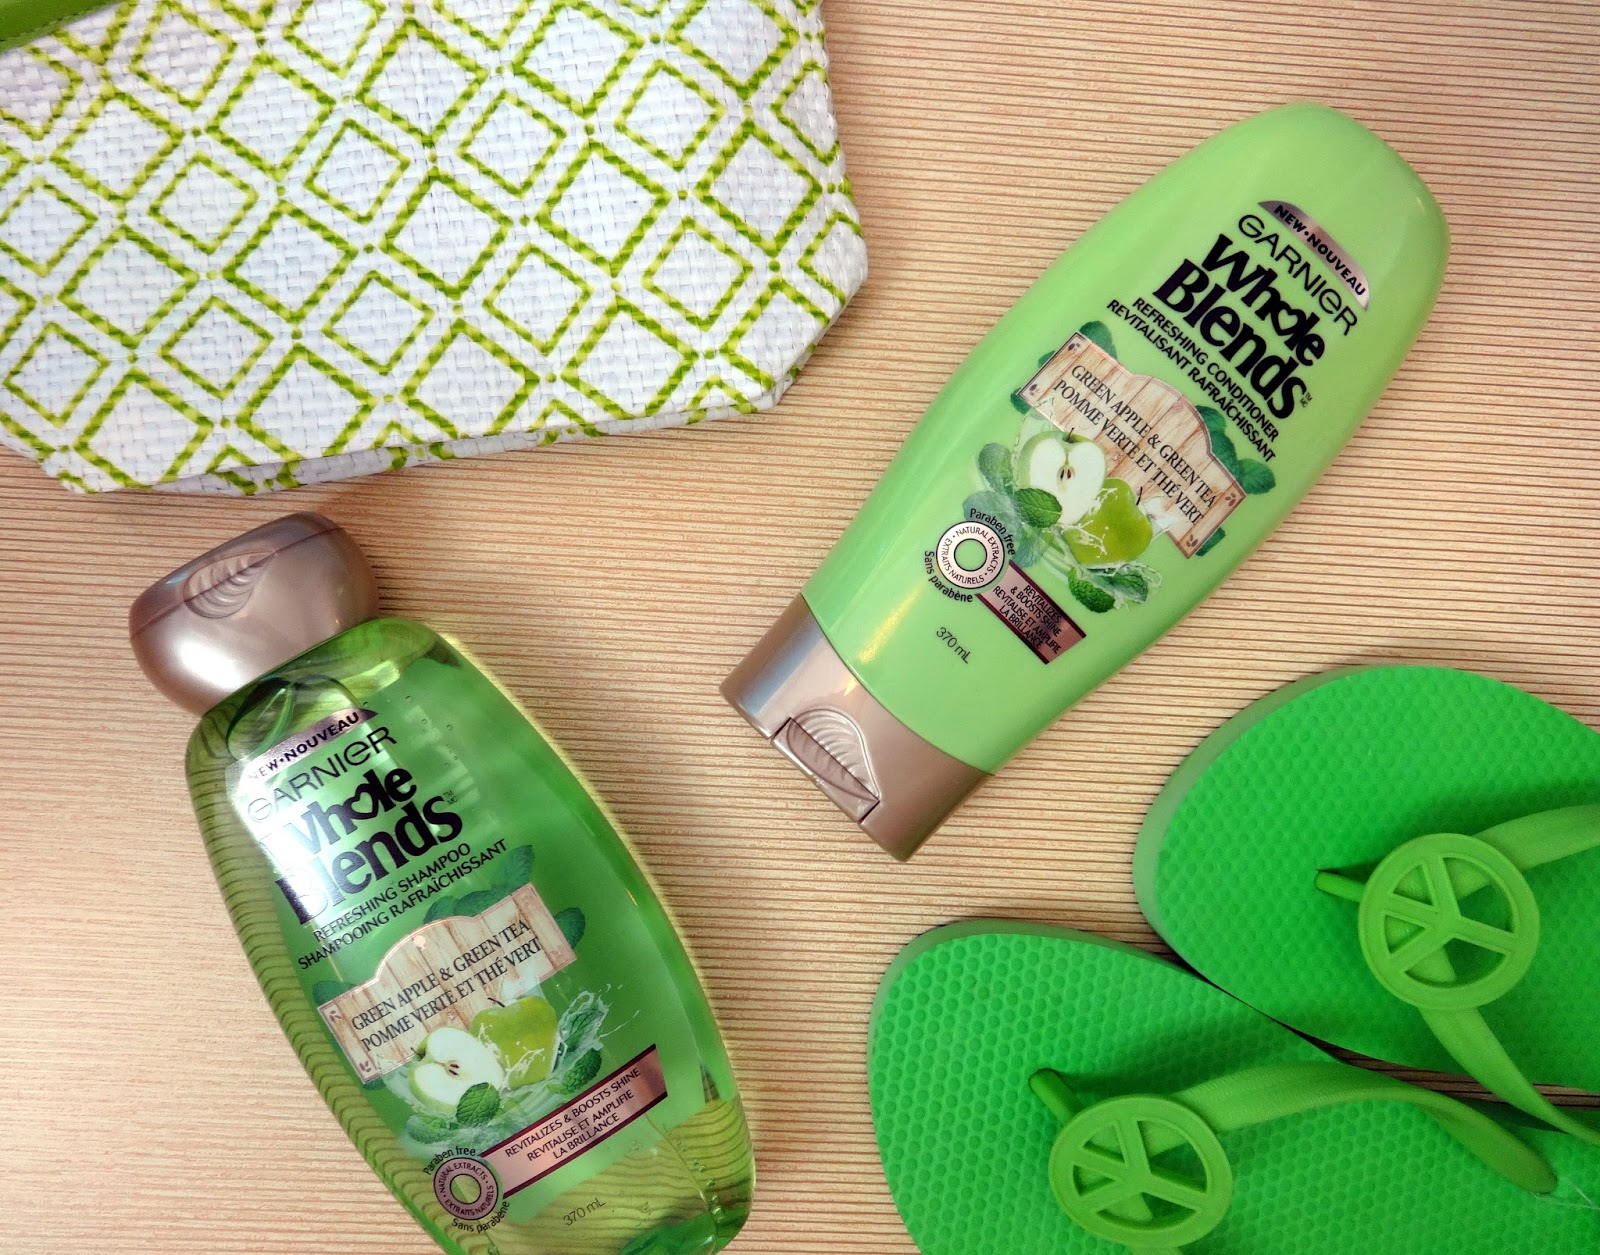 Garnier Whole Blends Green Apple and Green Tea Shampoo and Conditioner Review